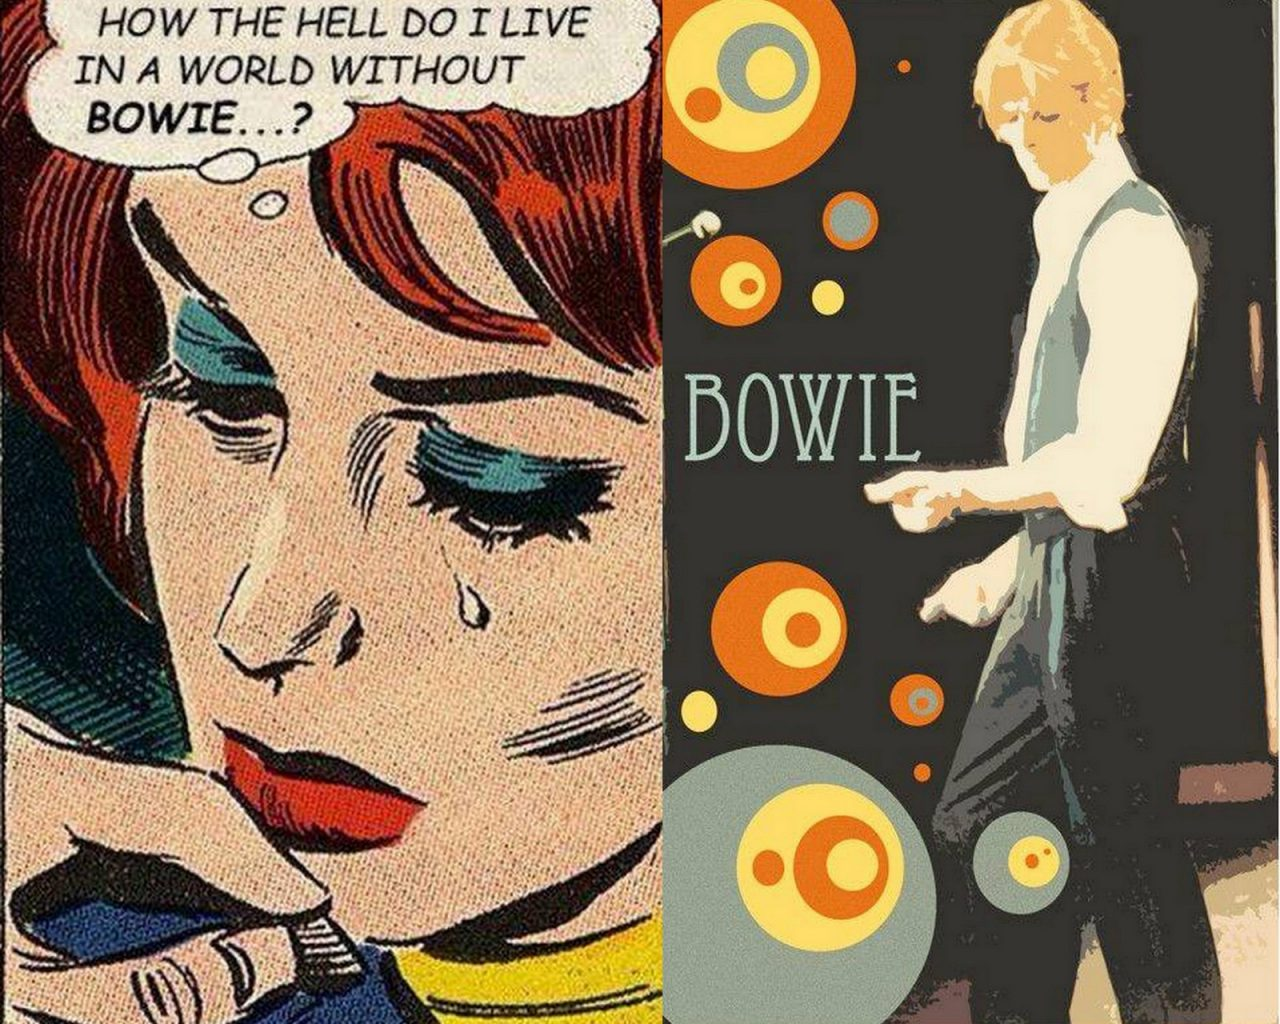 DAVID BOWIE – PARALLEL & CONTRA-PARALLEL ASPECTS OF A CULTURAL ICON